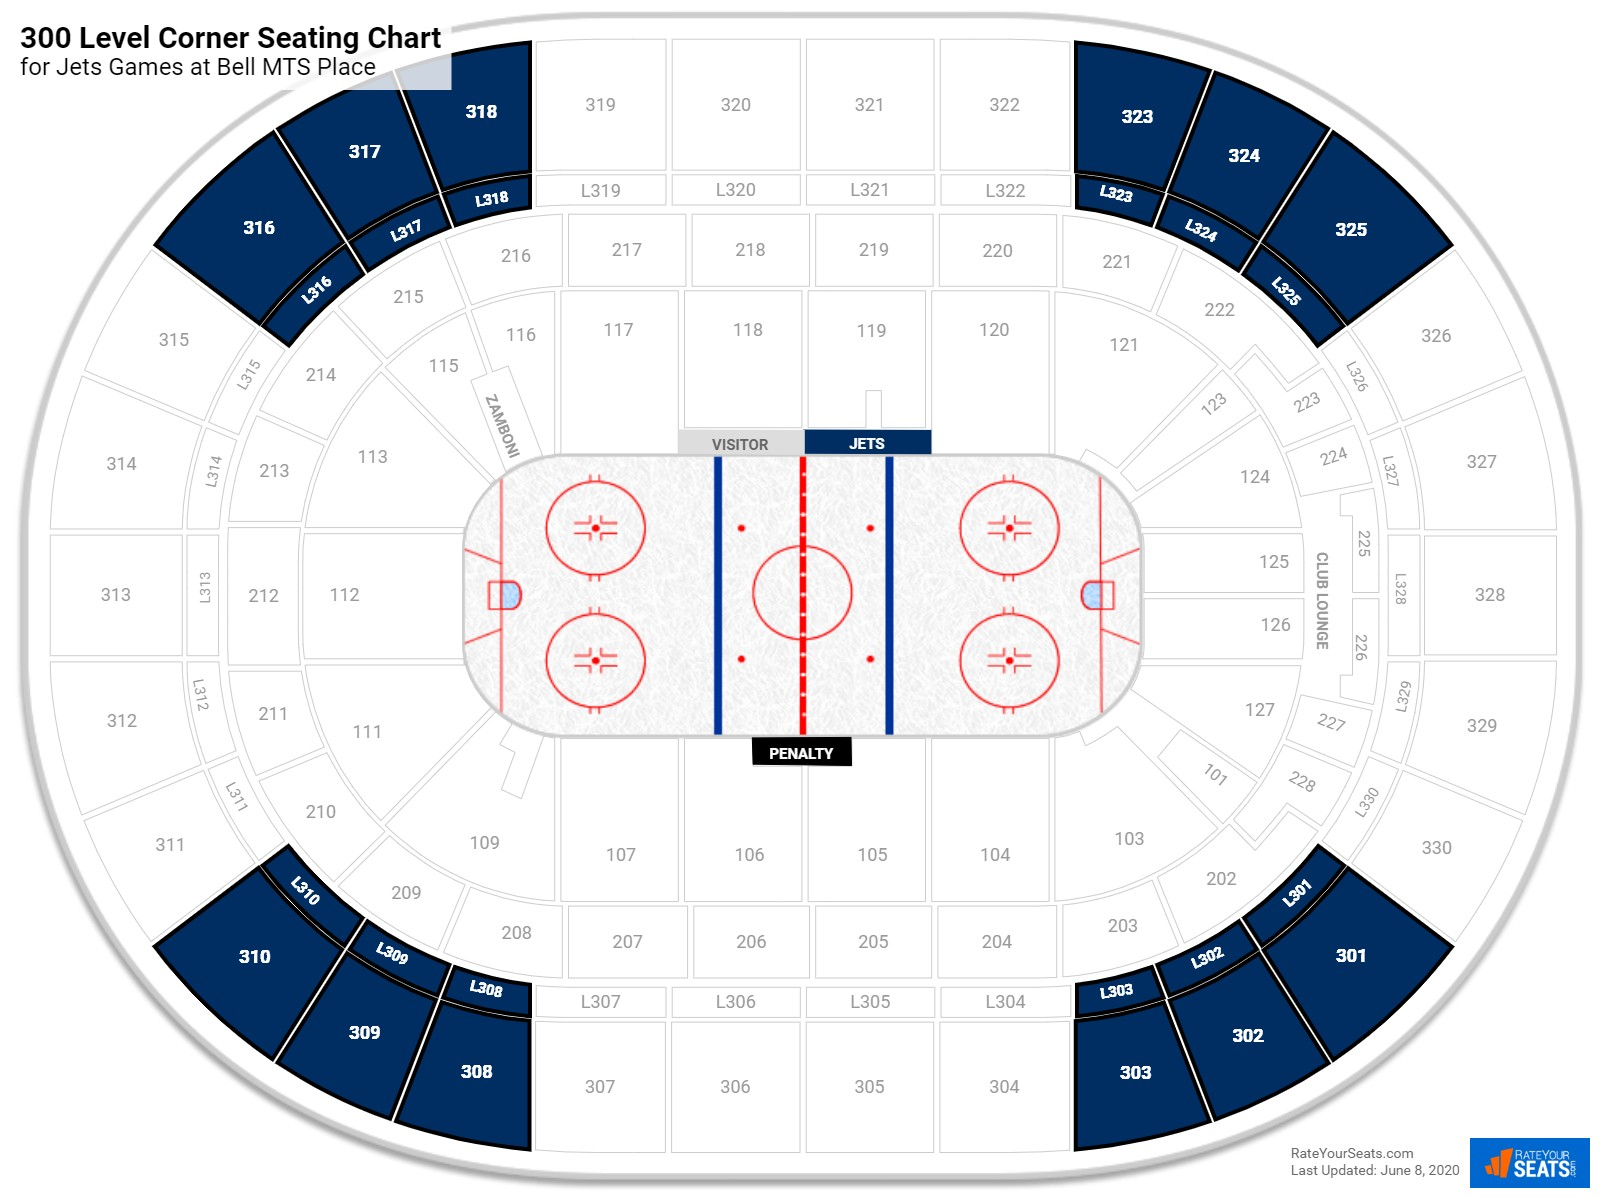 MTS Centre 300 Level Corner seating chart